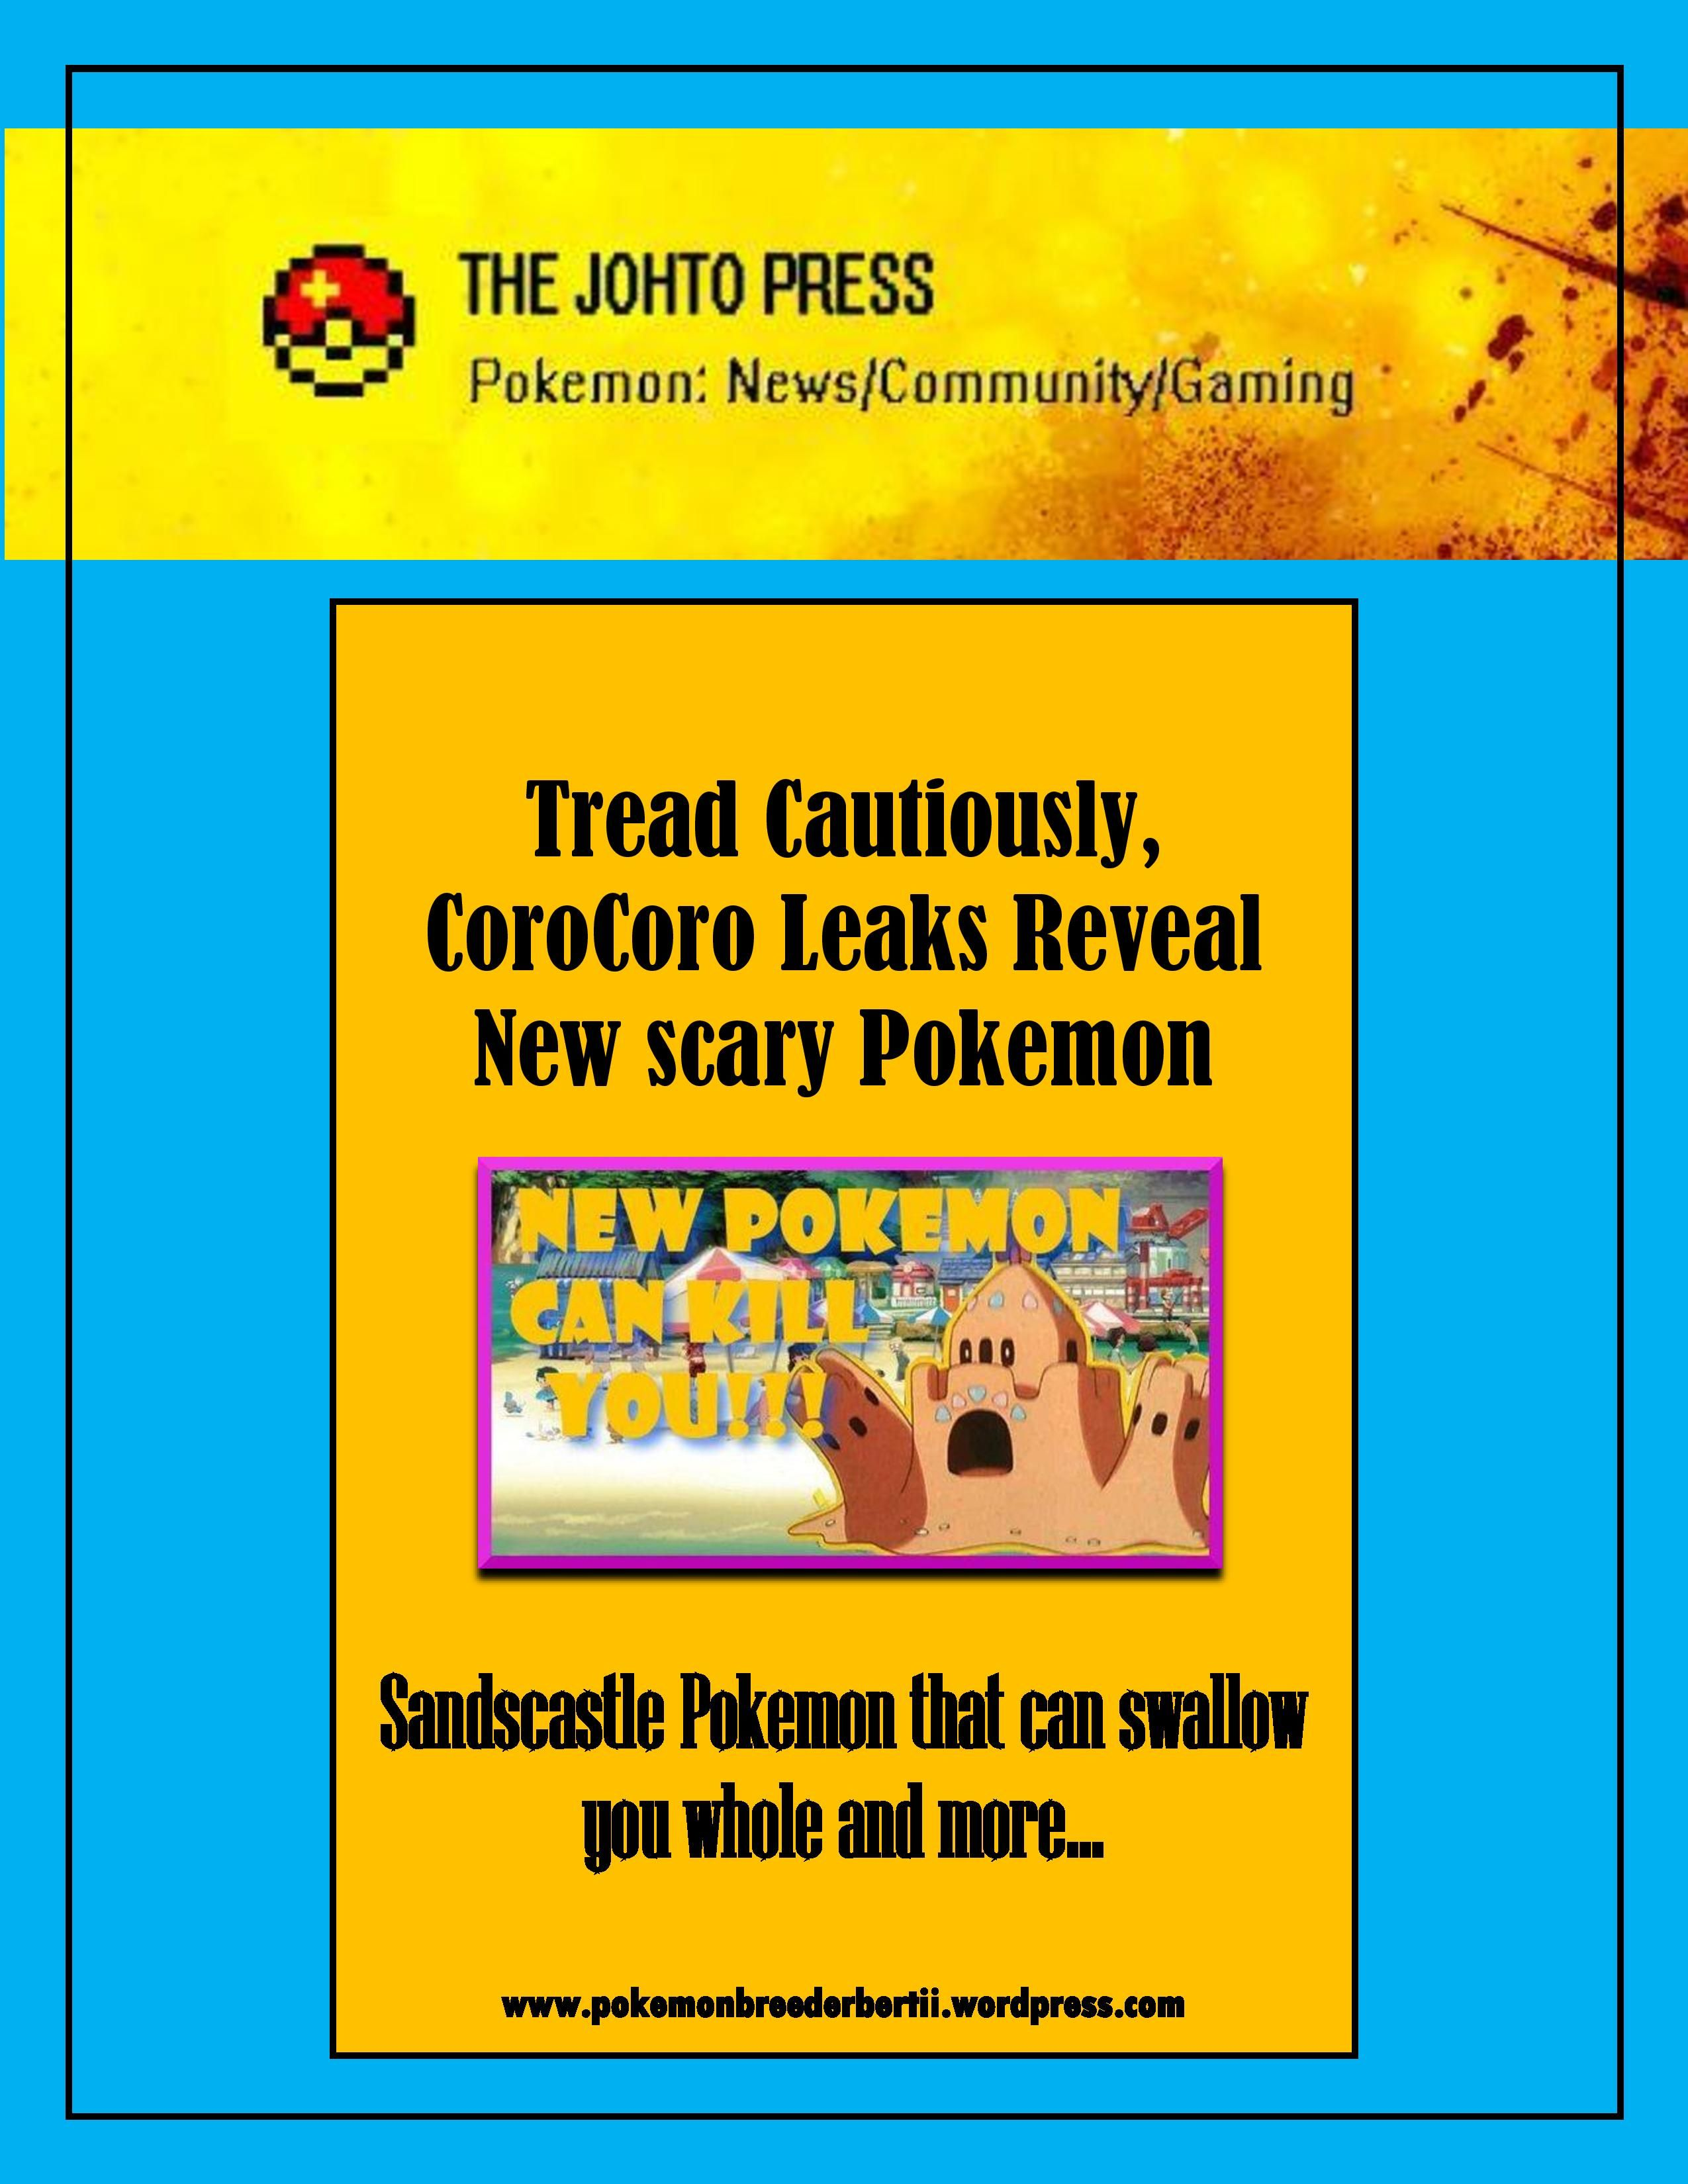 Are you afraid of quicksand? If so, then watch out for the new ... for Sandcastle Pokemon  45hul